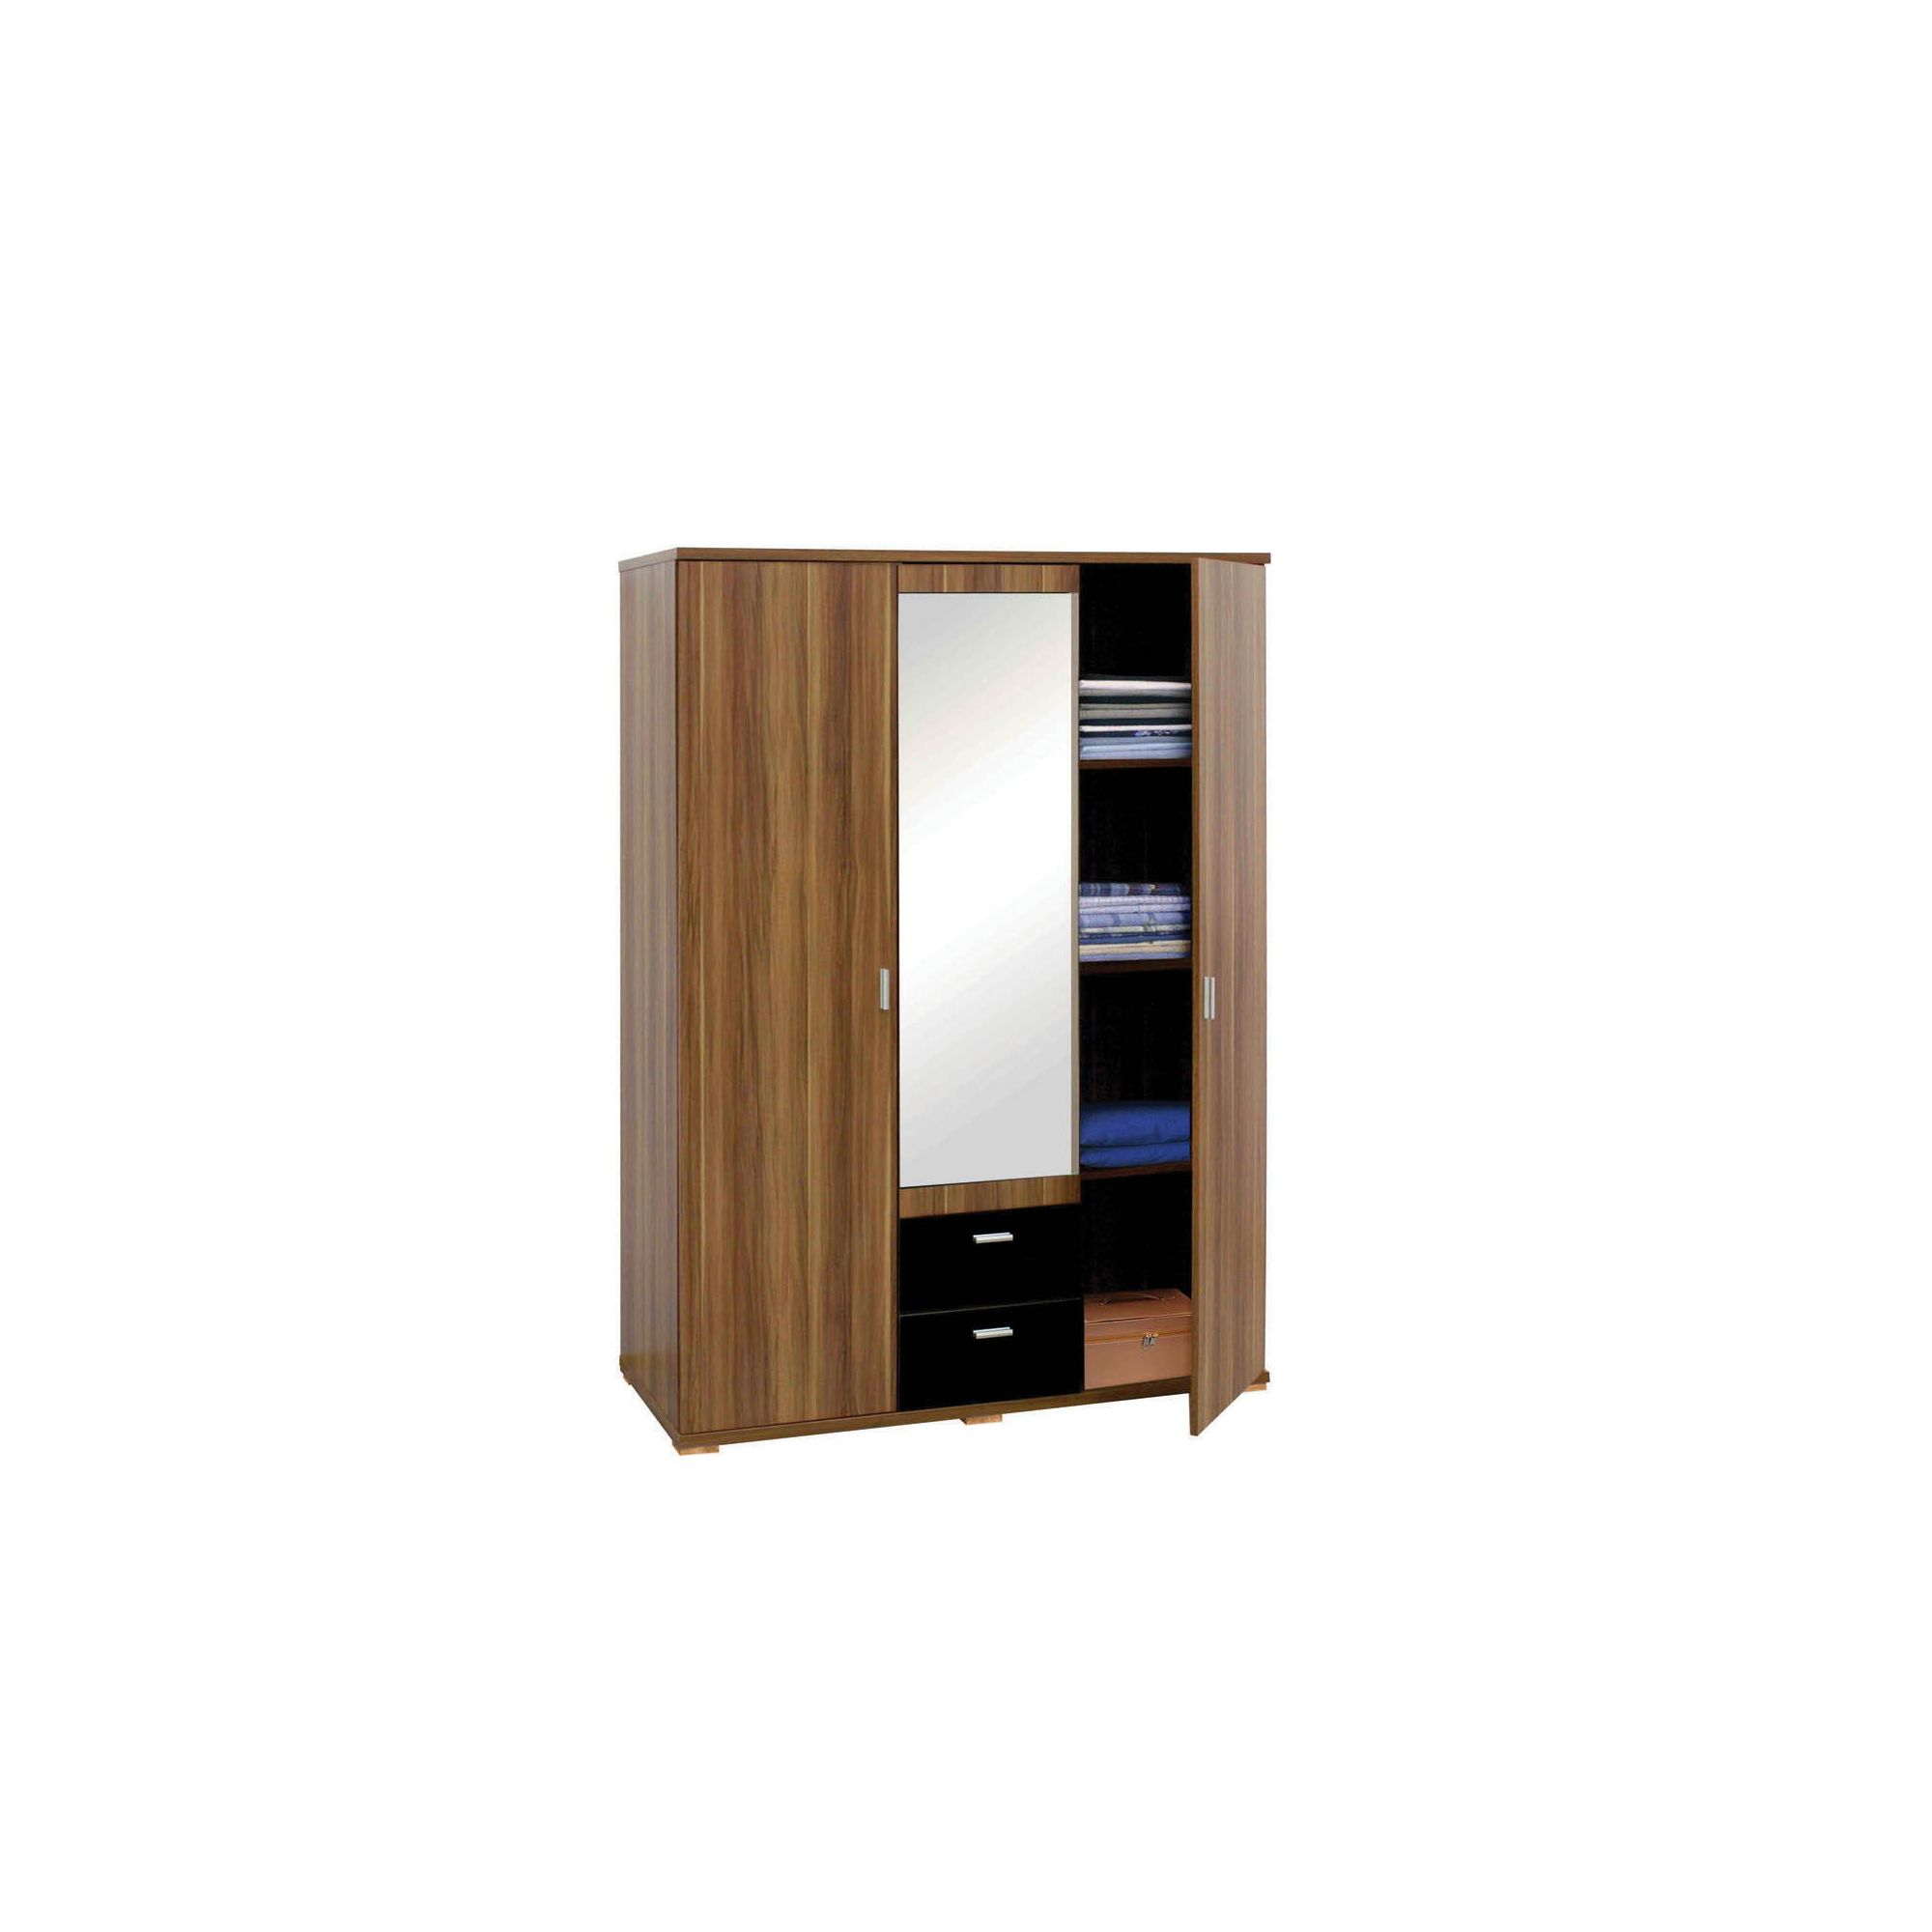 Premier Housewares Fargo Wardrobe at Tesco Direct